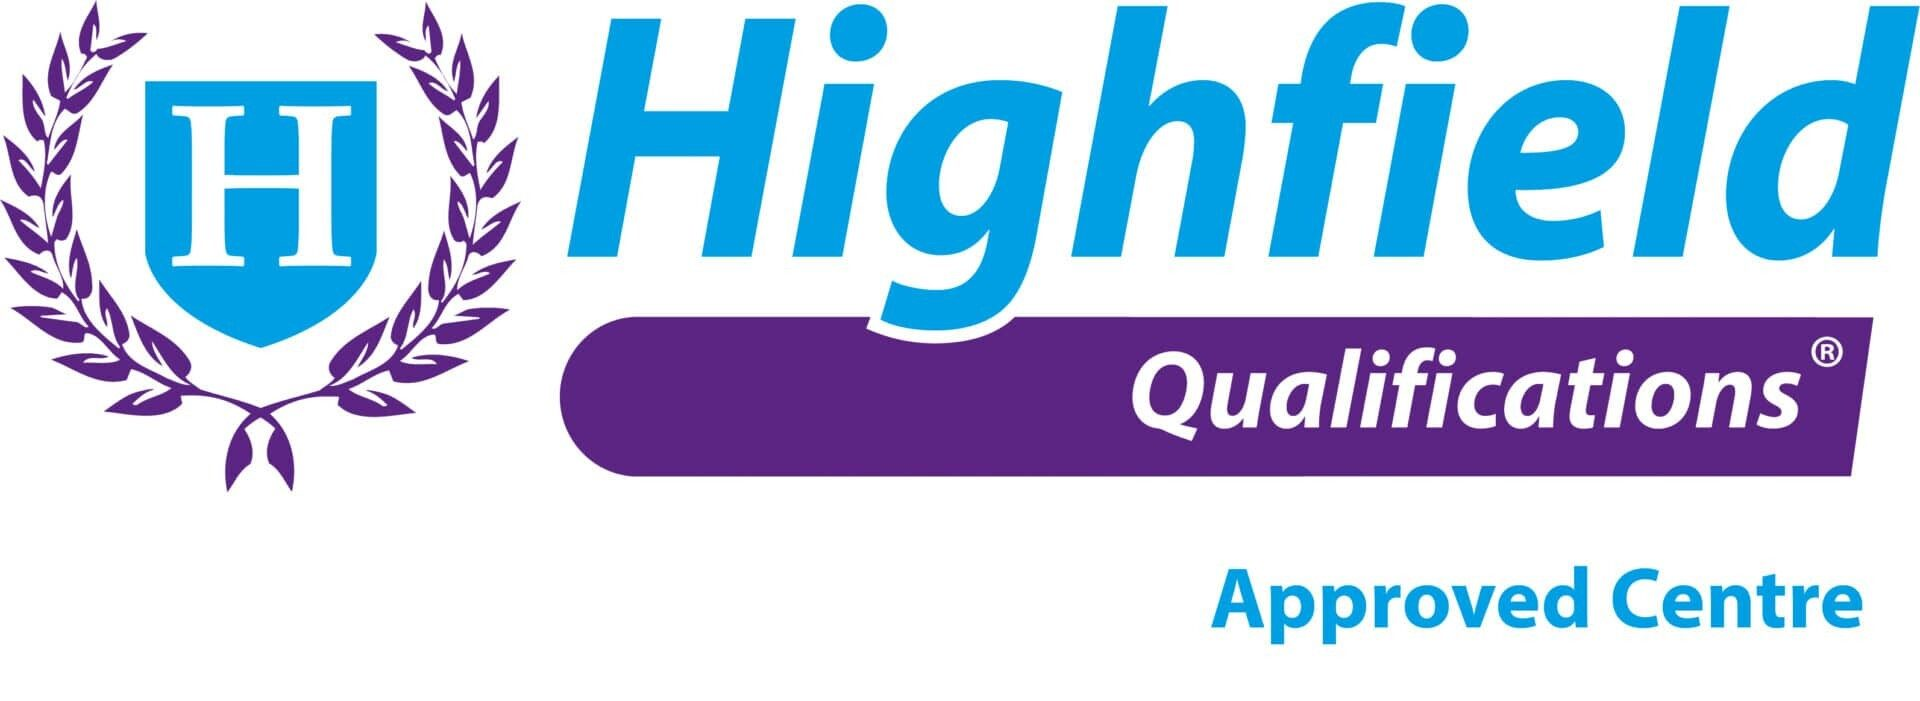 Highfield Qualification Approved Centre logo